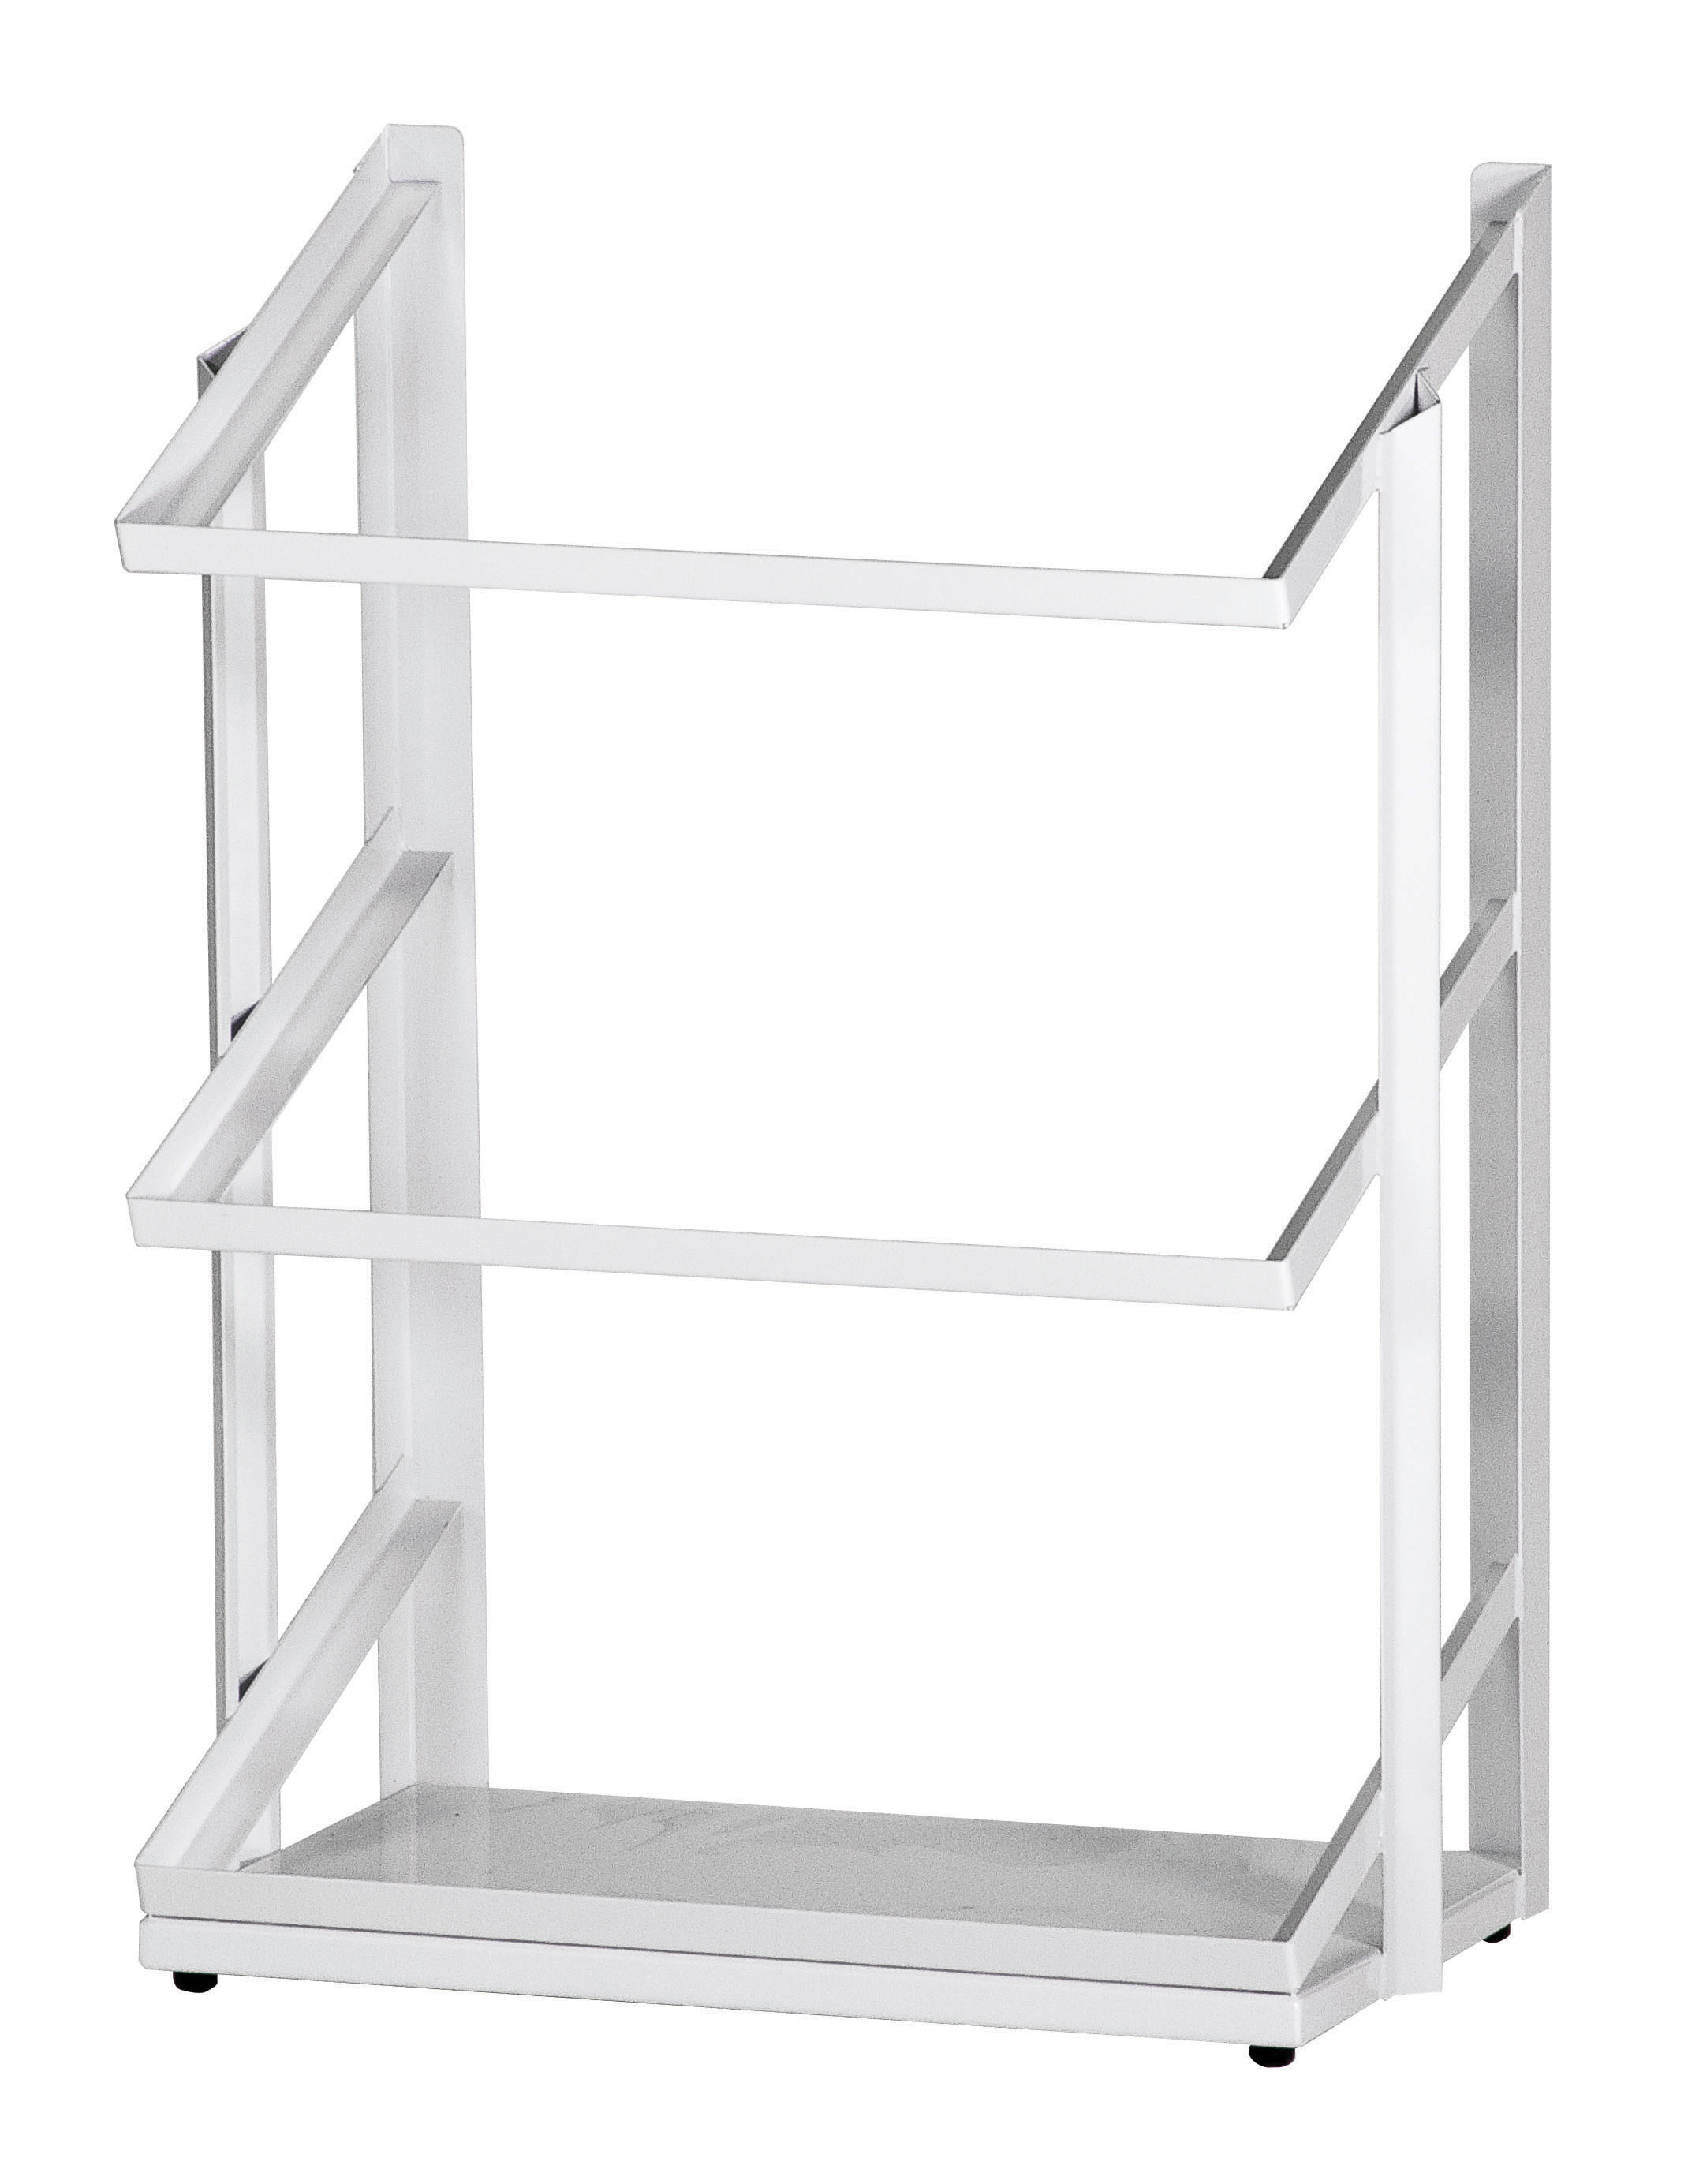 3 Basket Display Rack